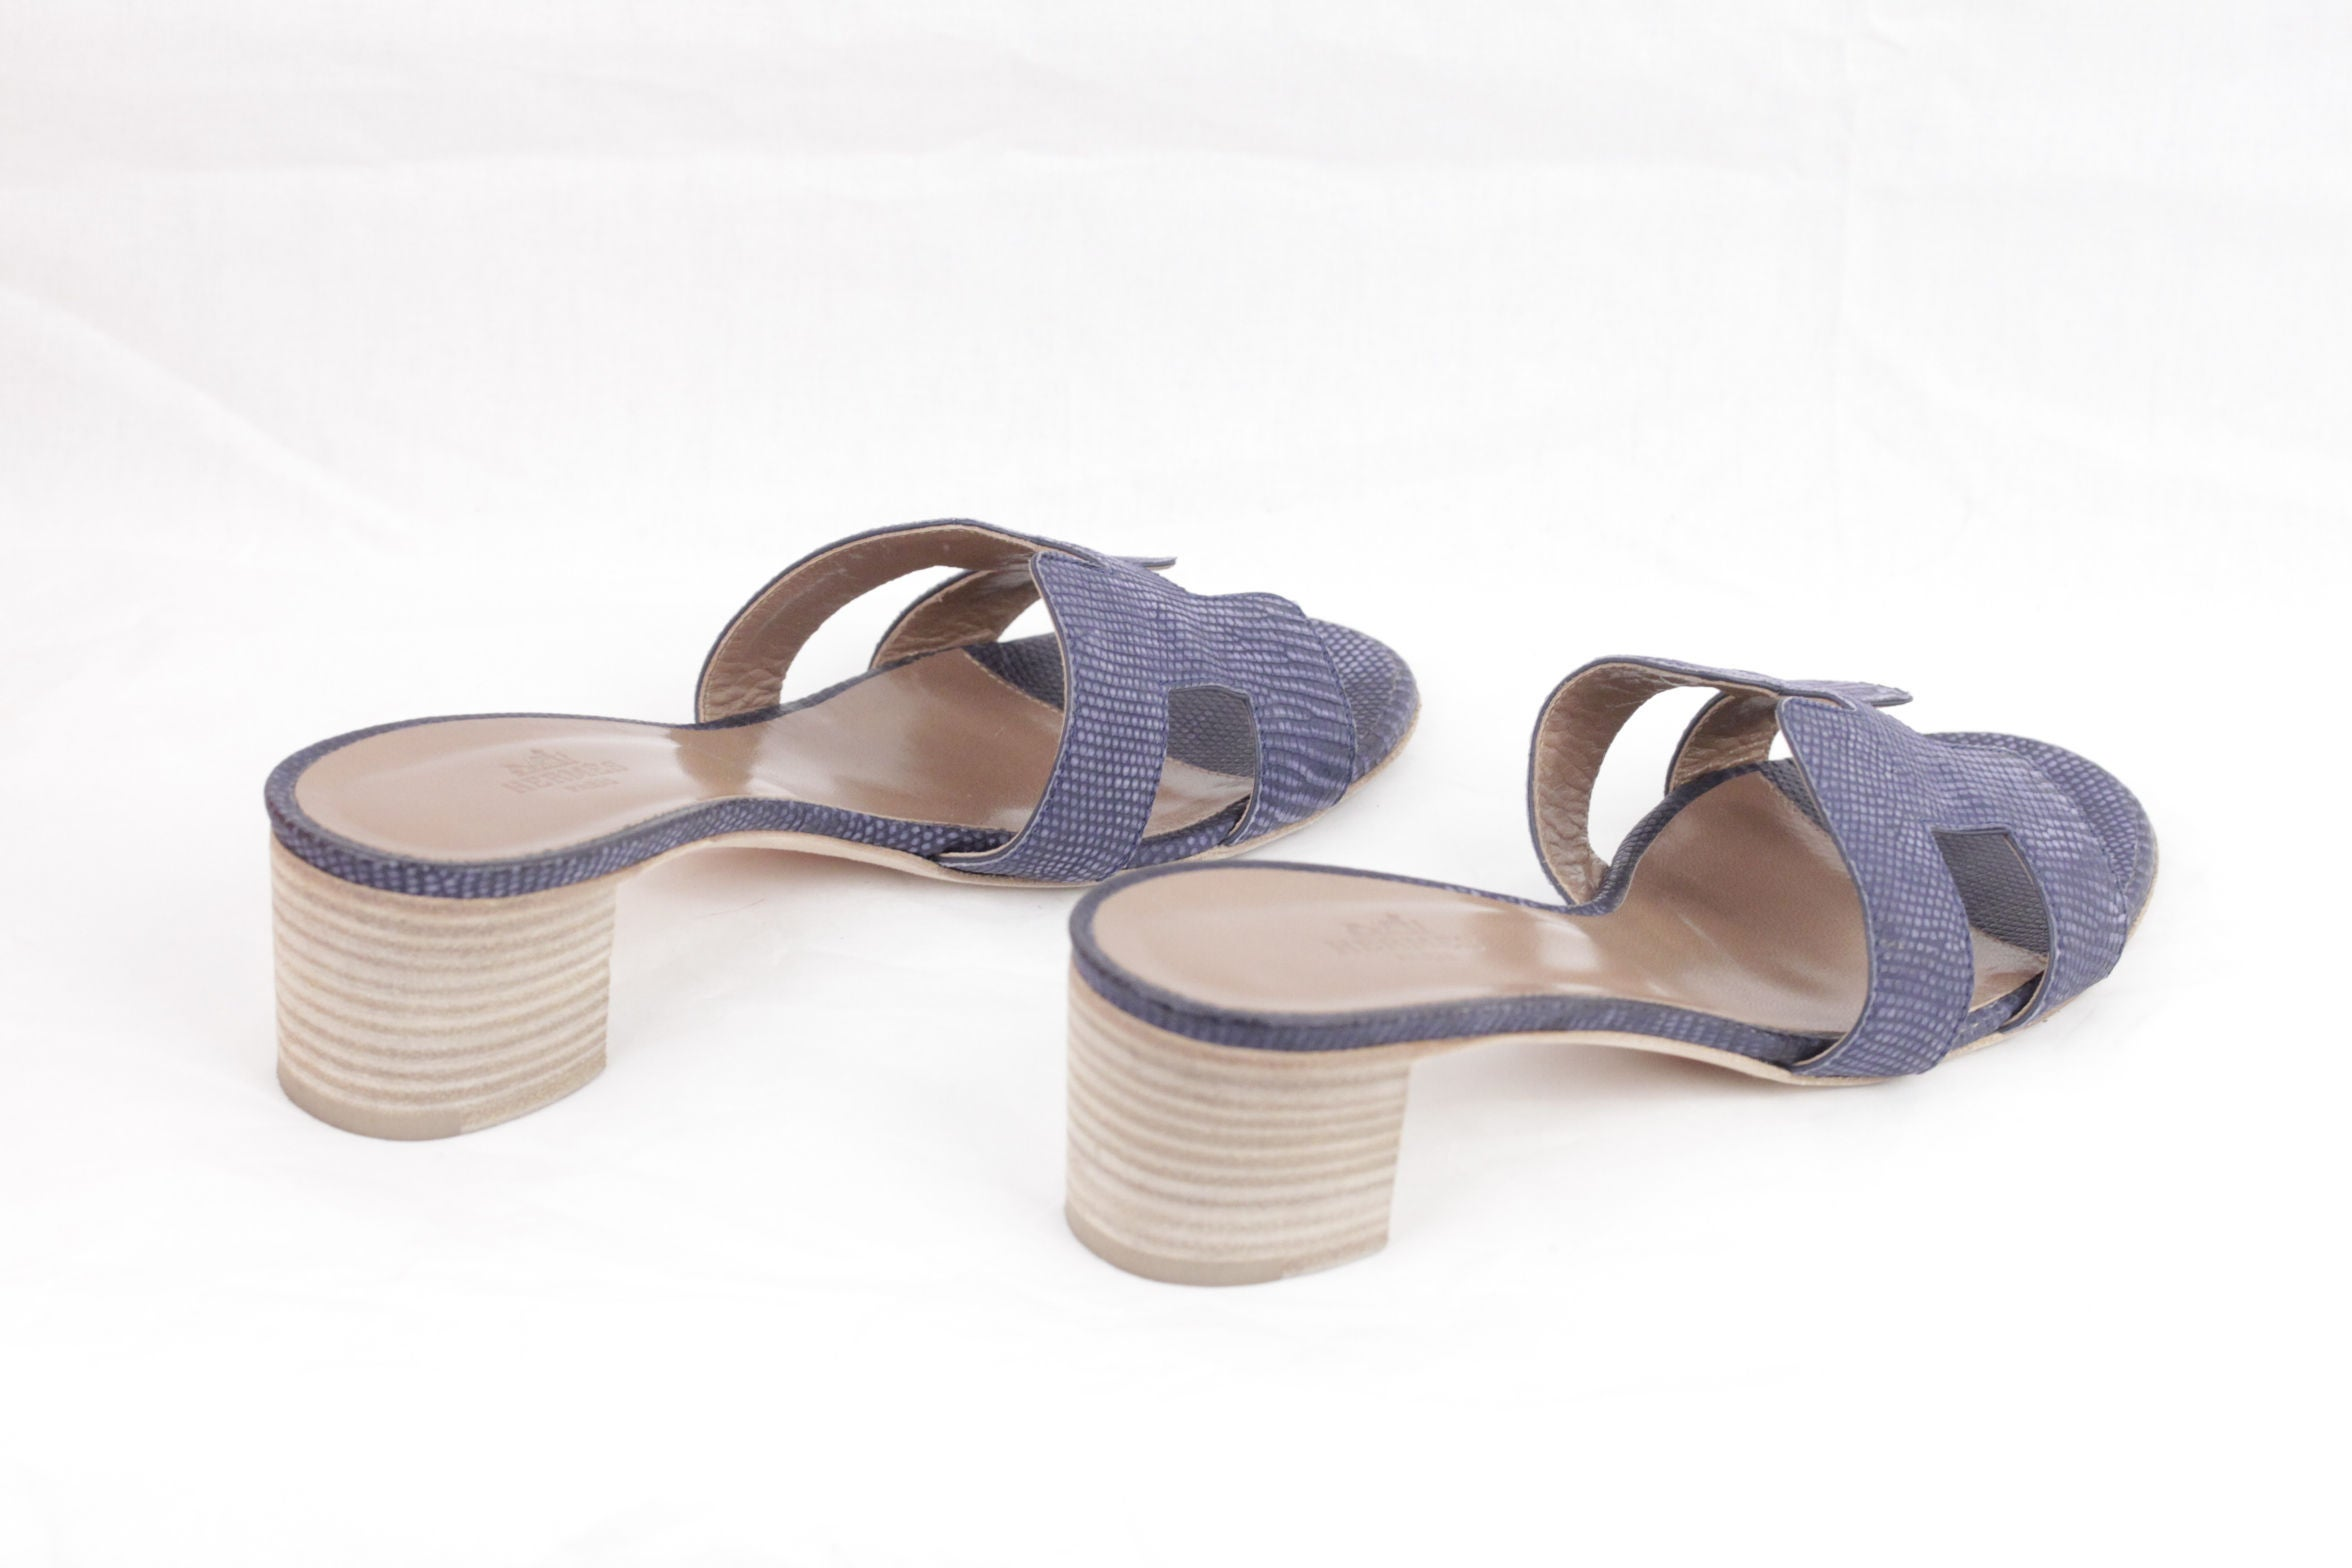 f5c9a1651eeb HERMES PARIS Light Blue OASIS SANDALS Shoes SLIDES Size 36 w/ BOX at 1stdibs